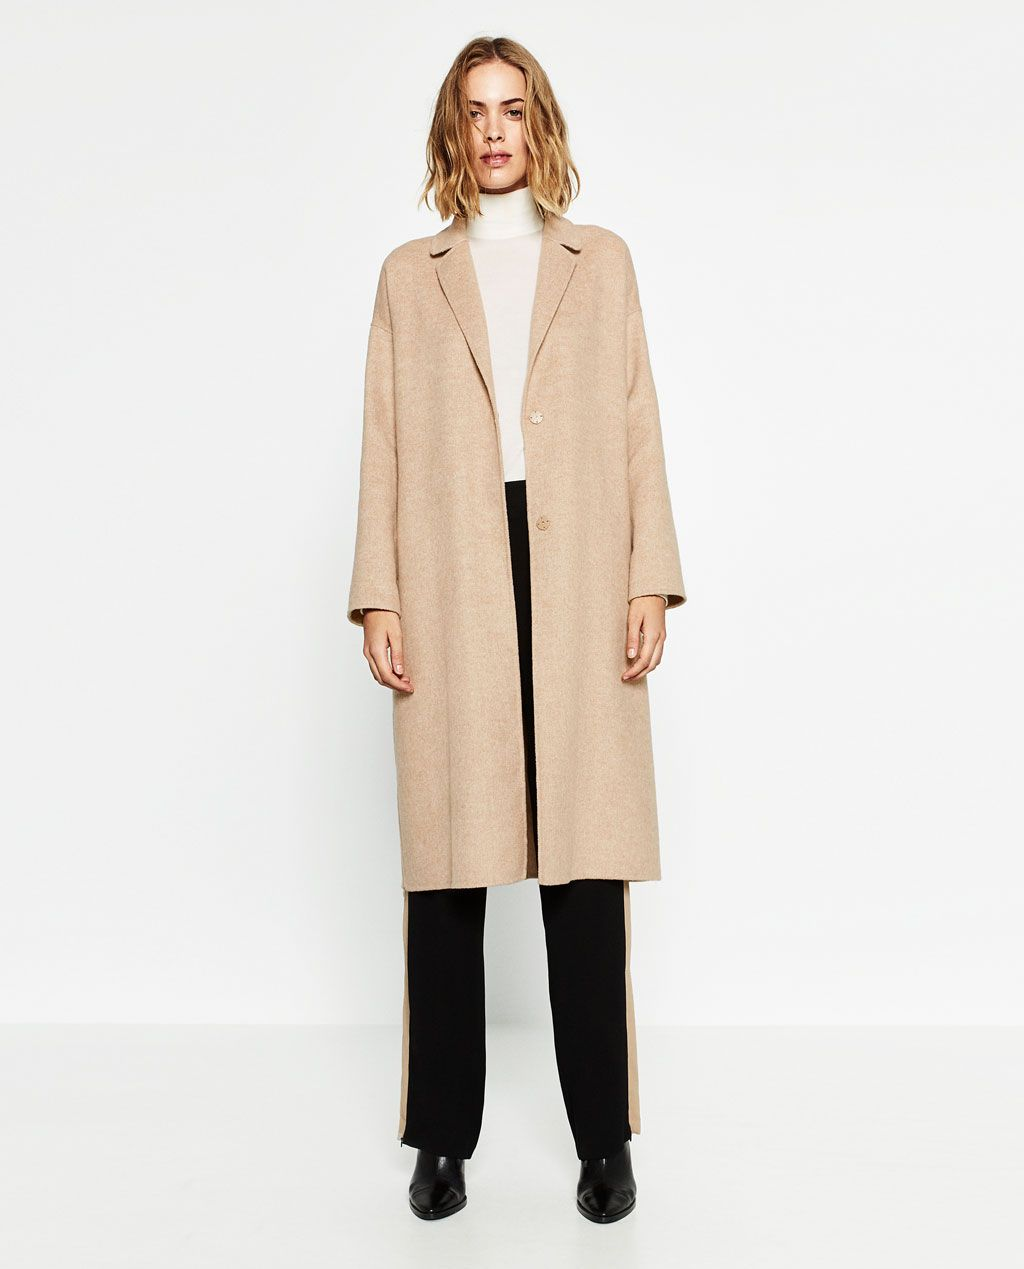 wool coat view all outerwear w zara united states wool coat view all outerwear w zara united states